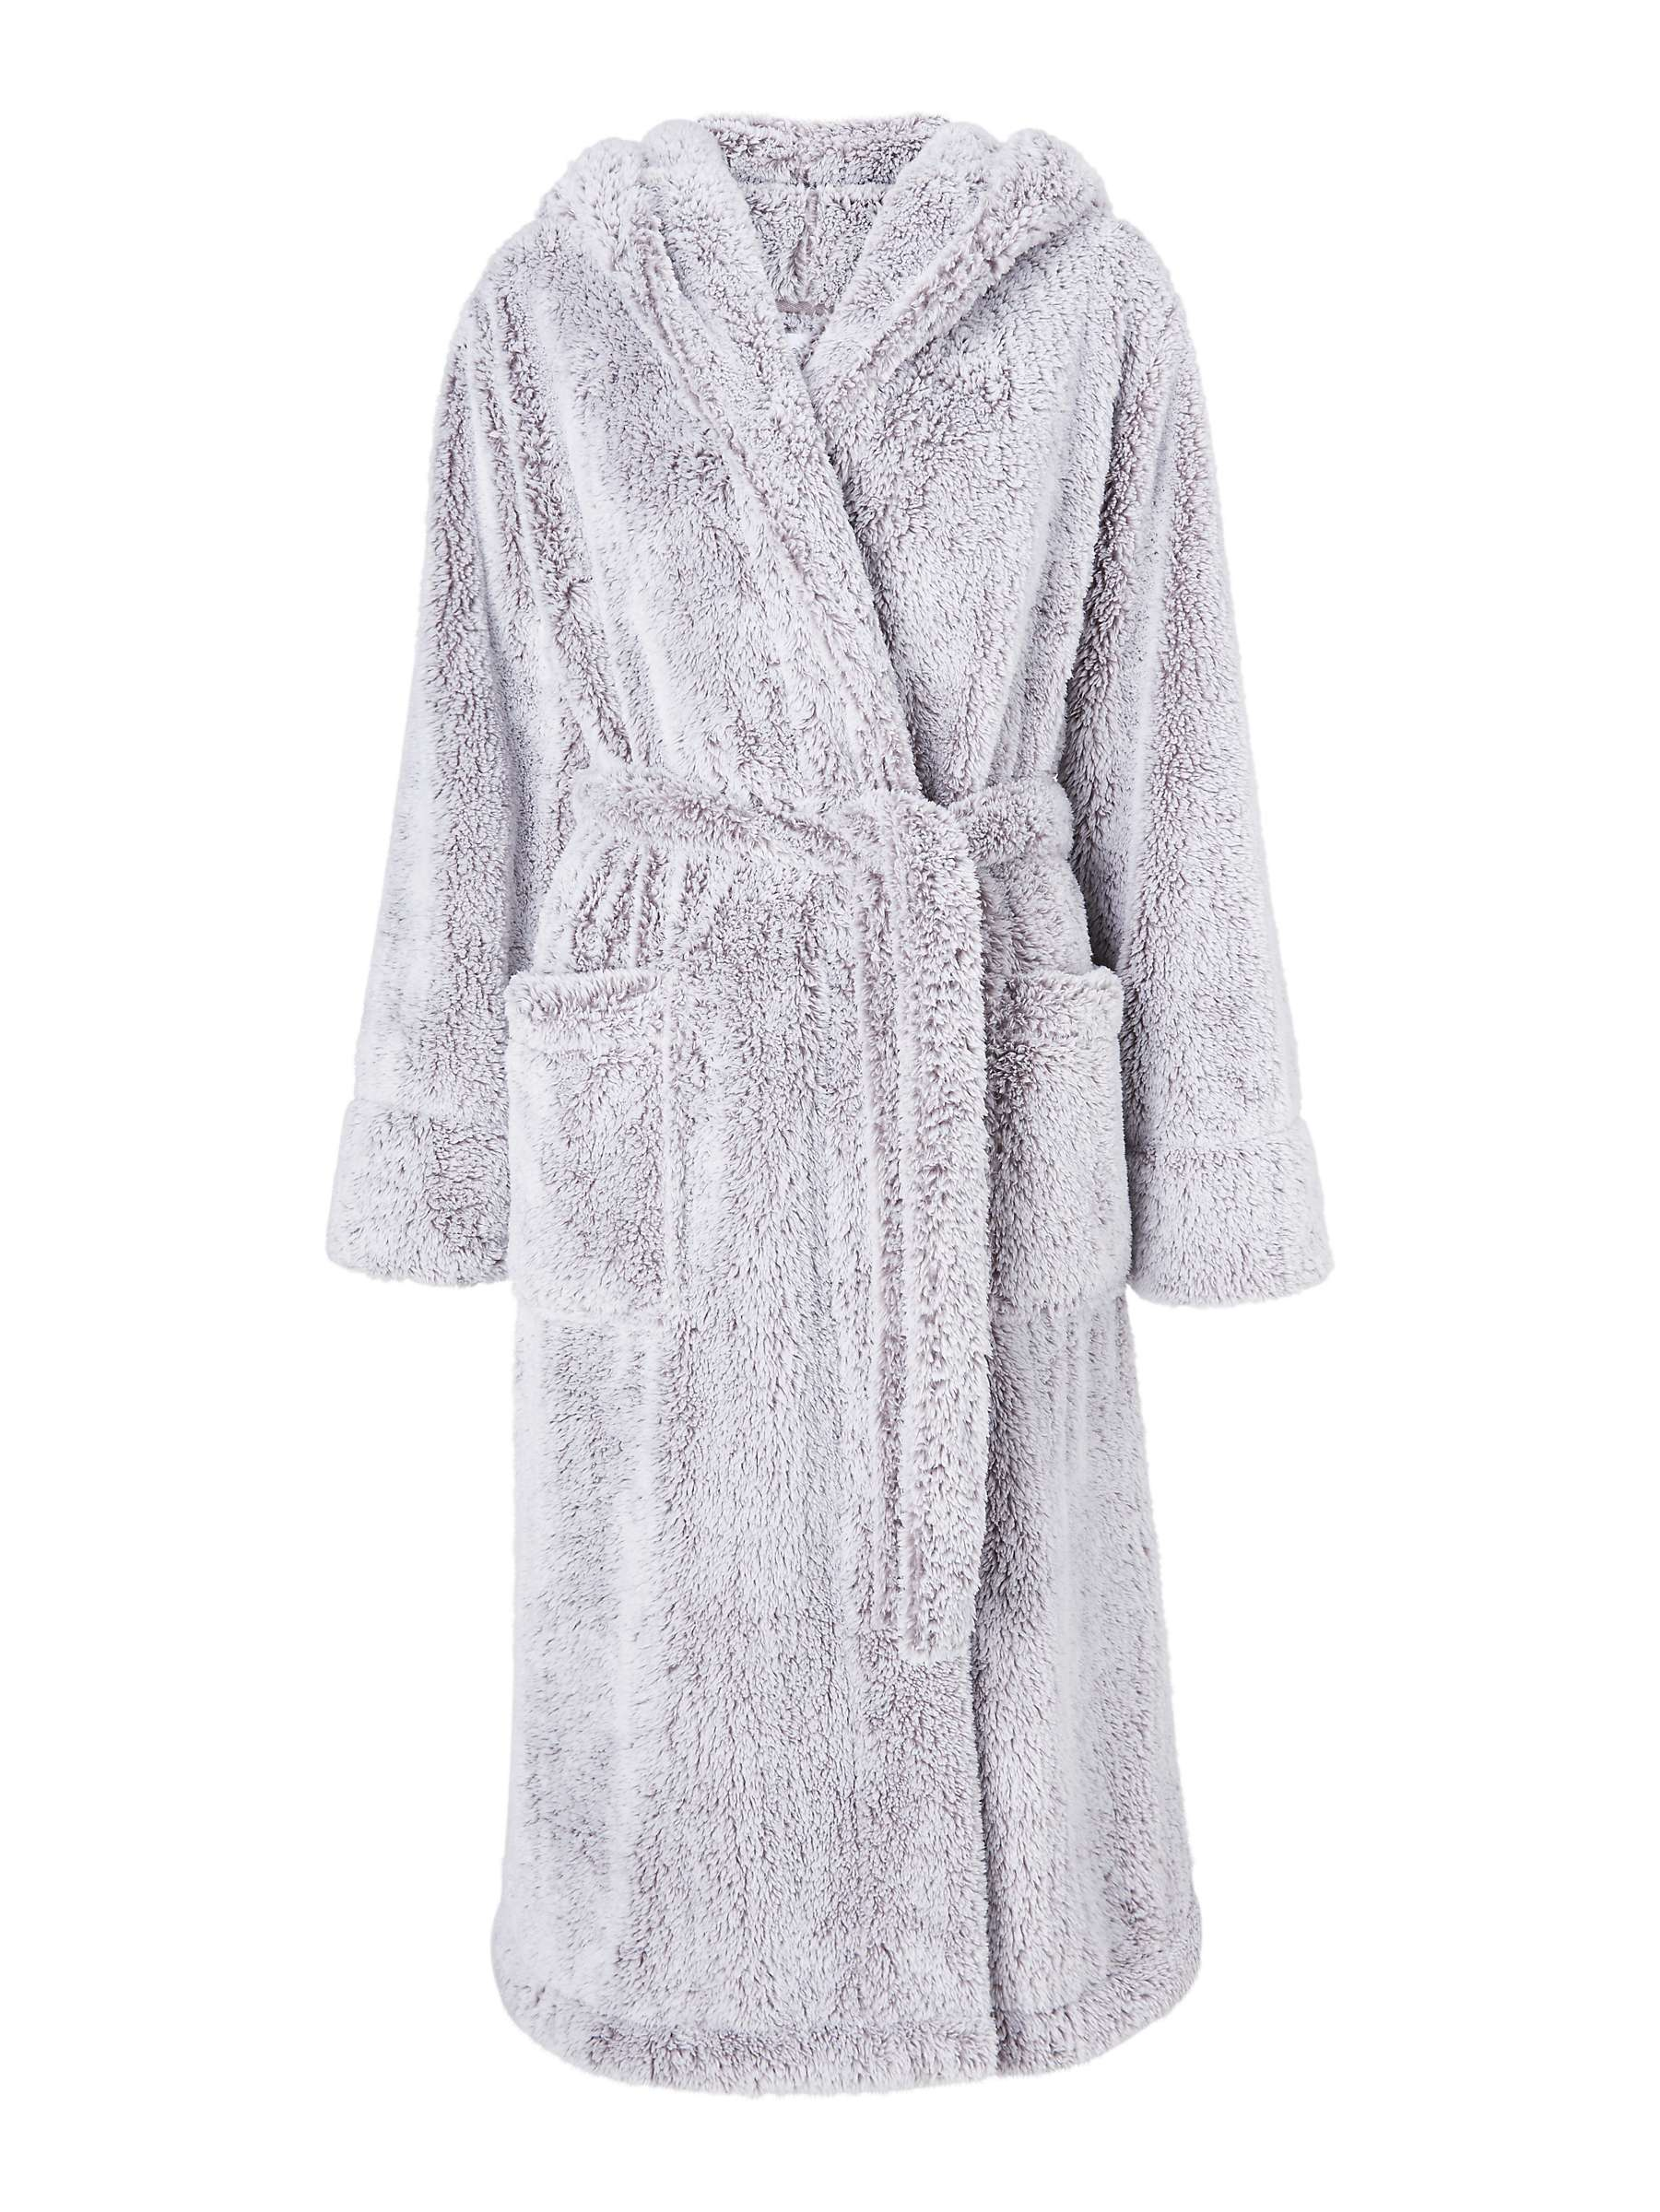 John Lewis & Partners Hi Pile Fleece Robe, Grey